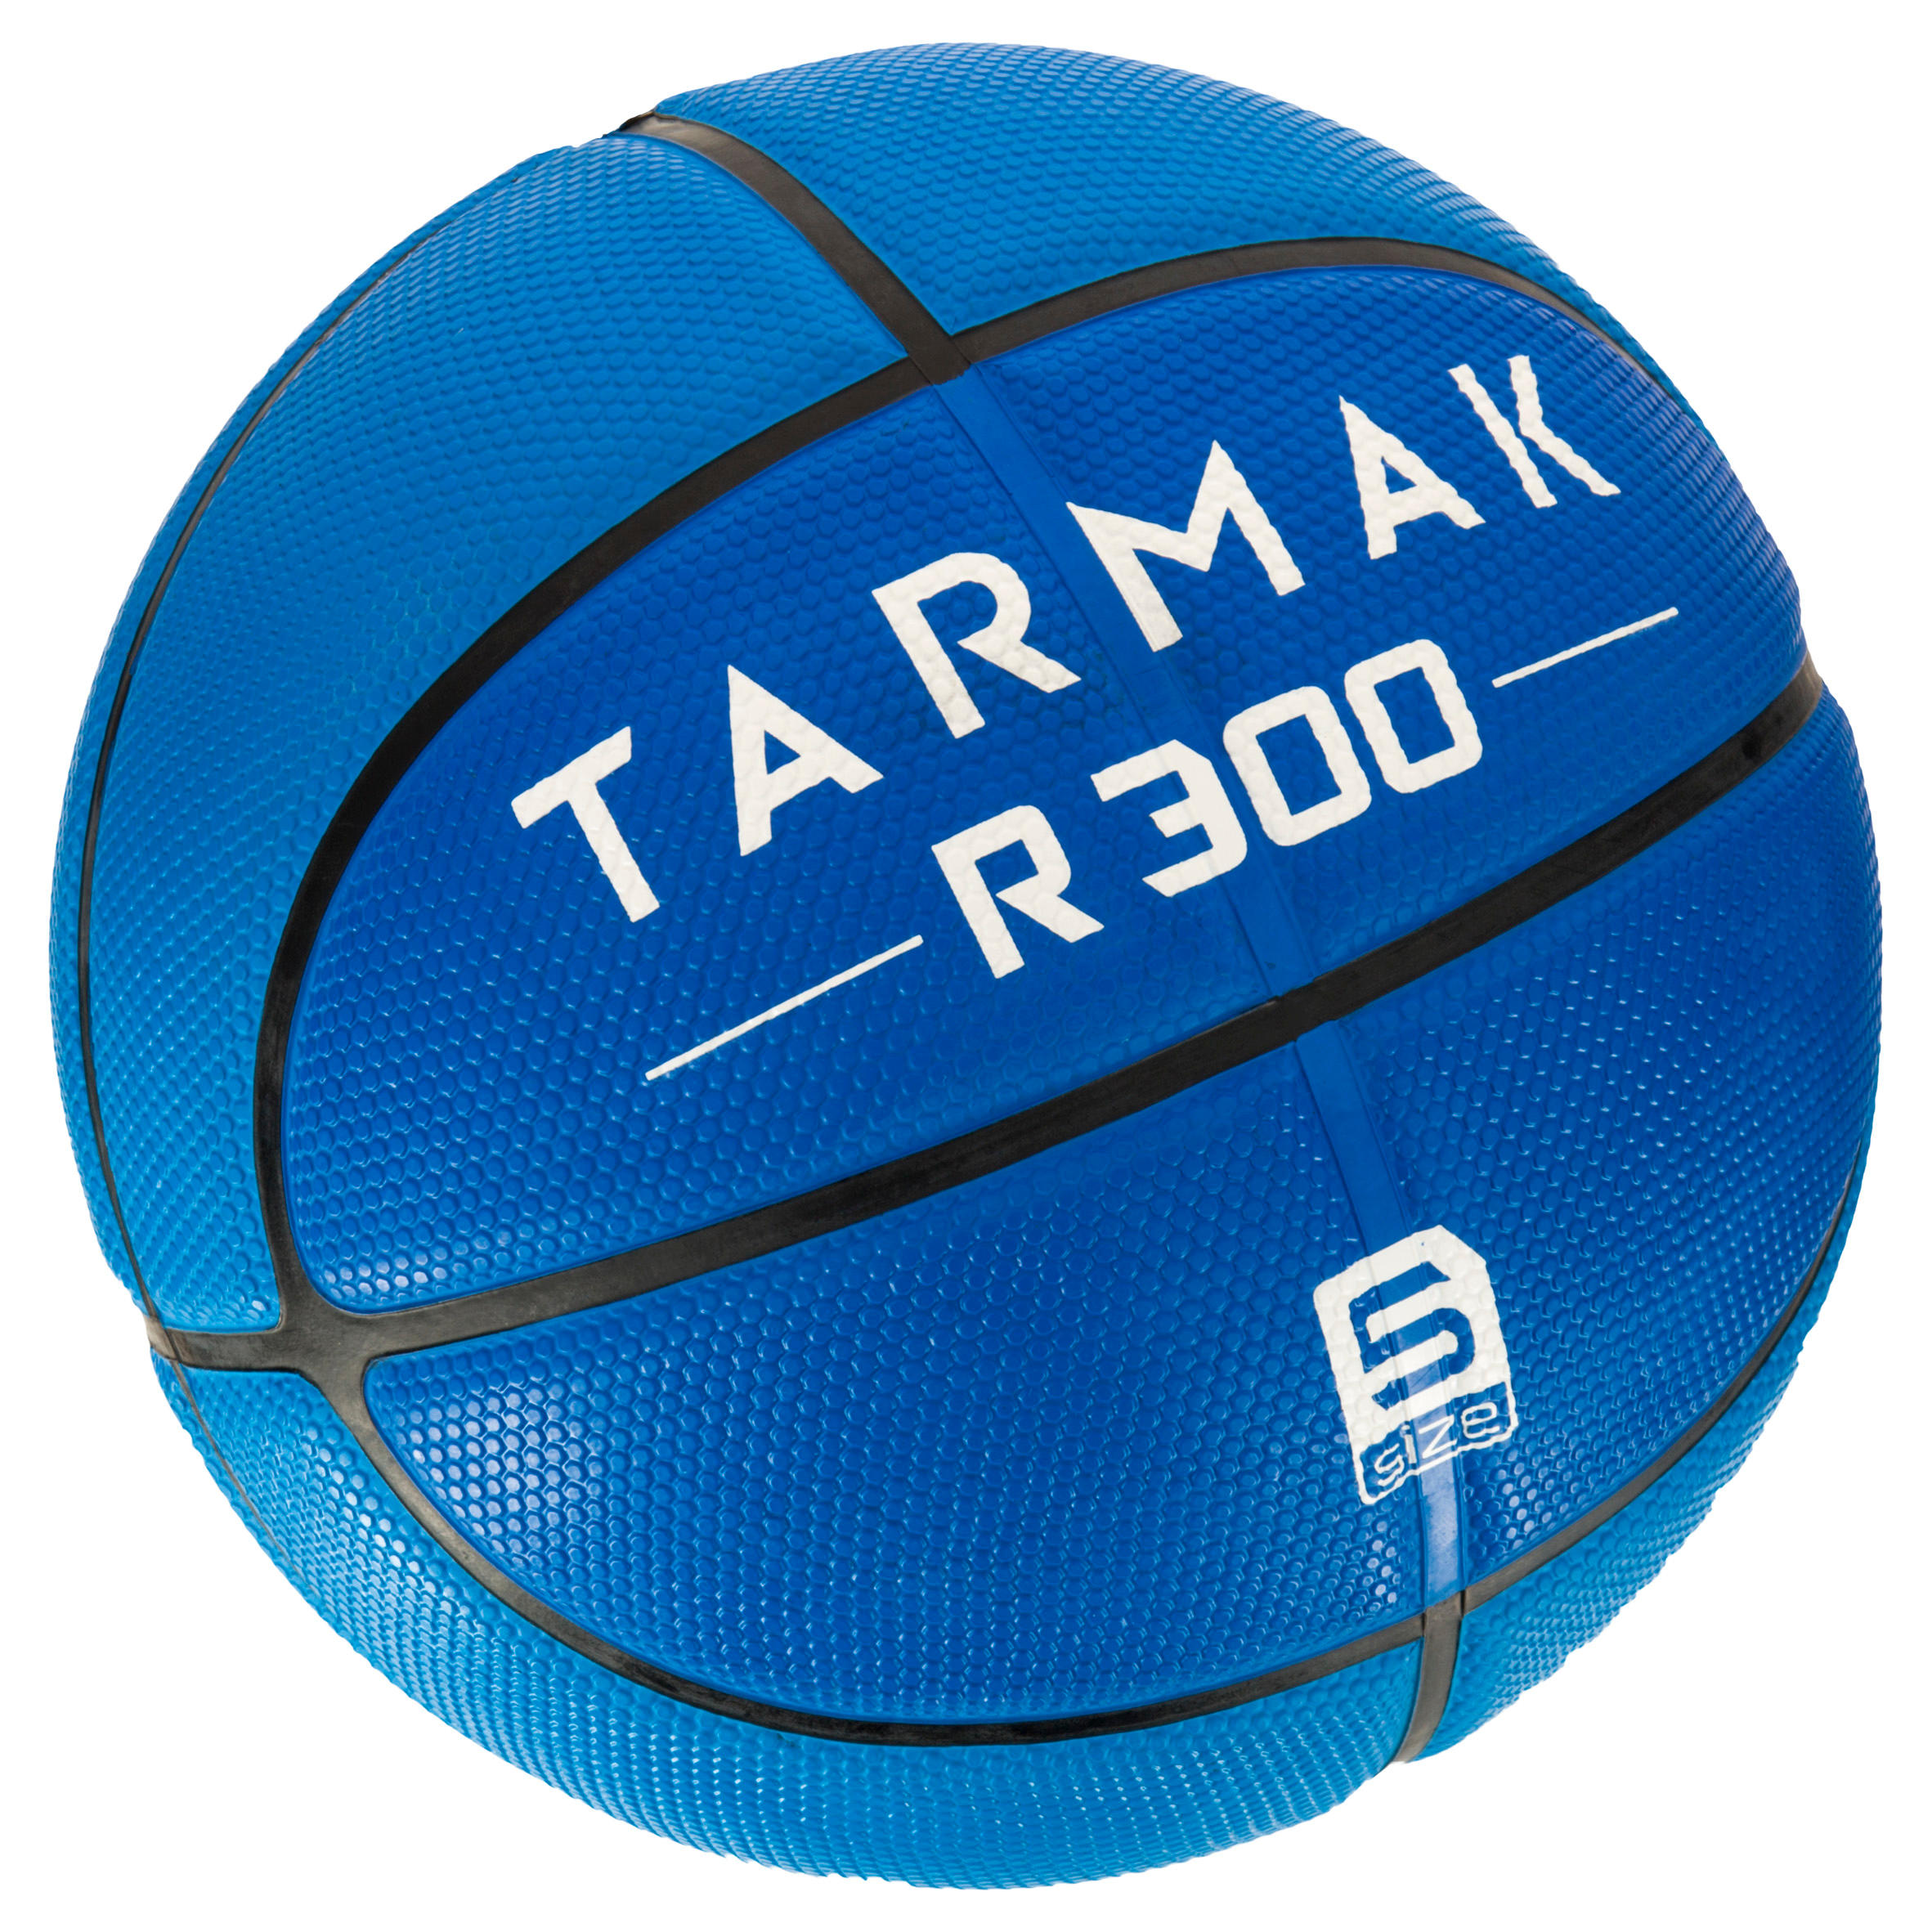 R300 Kids' Size 5 Basketball - Blue Durable.